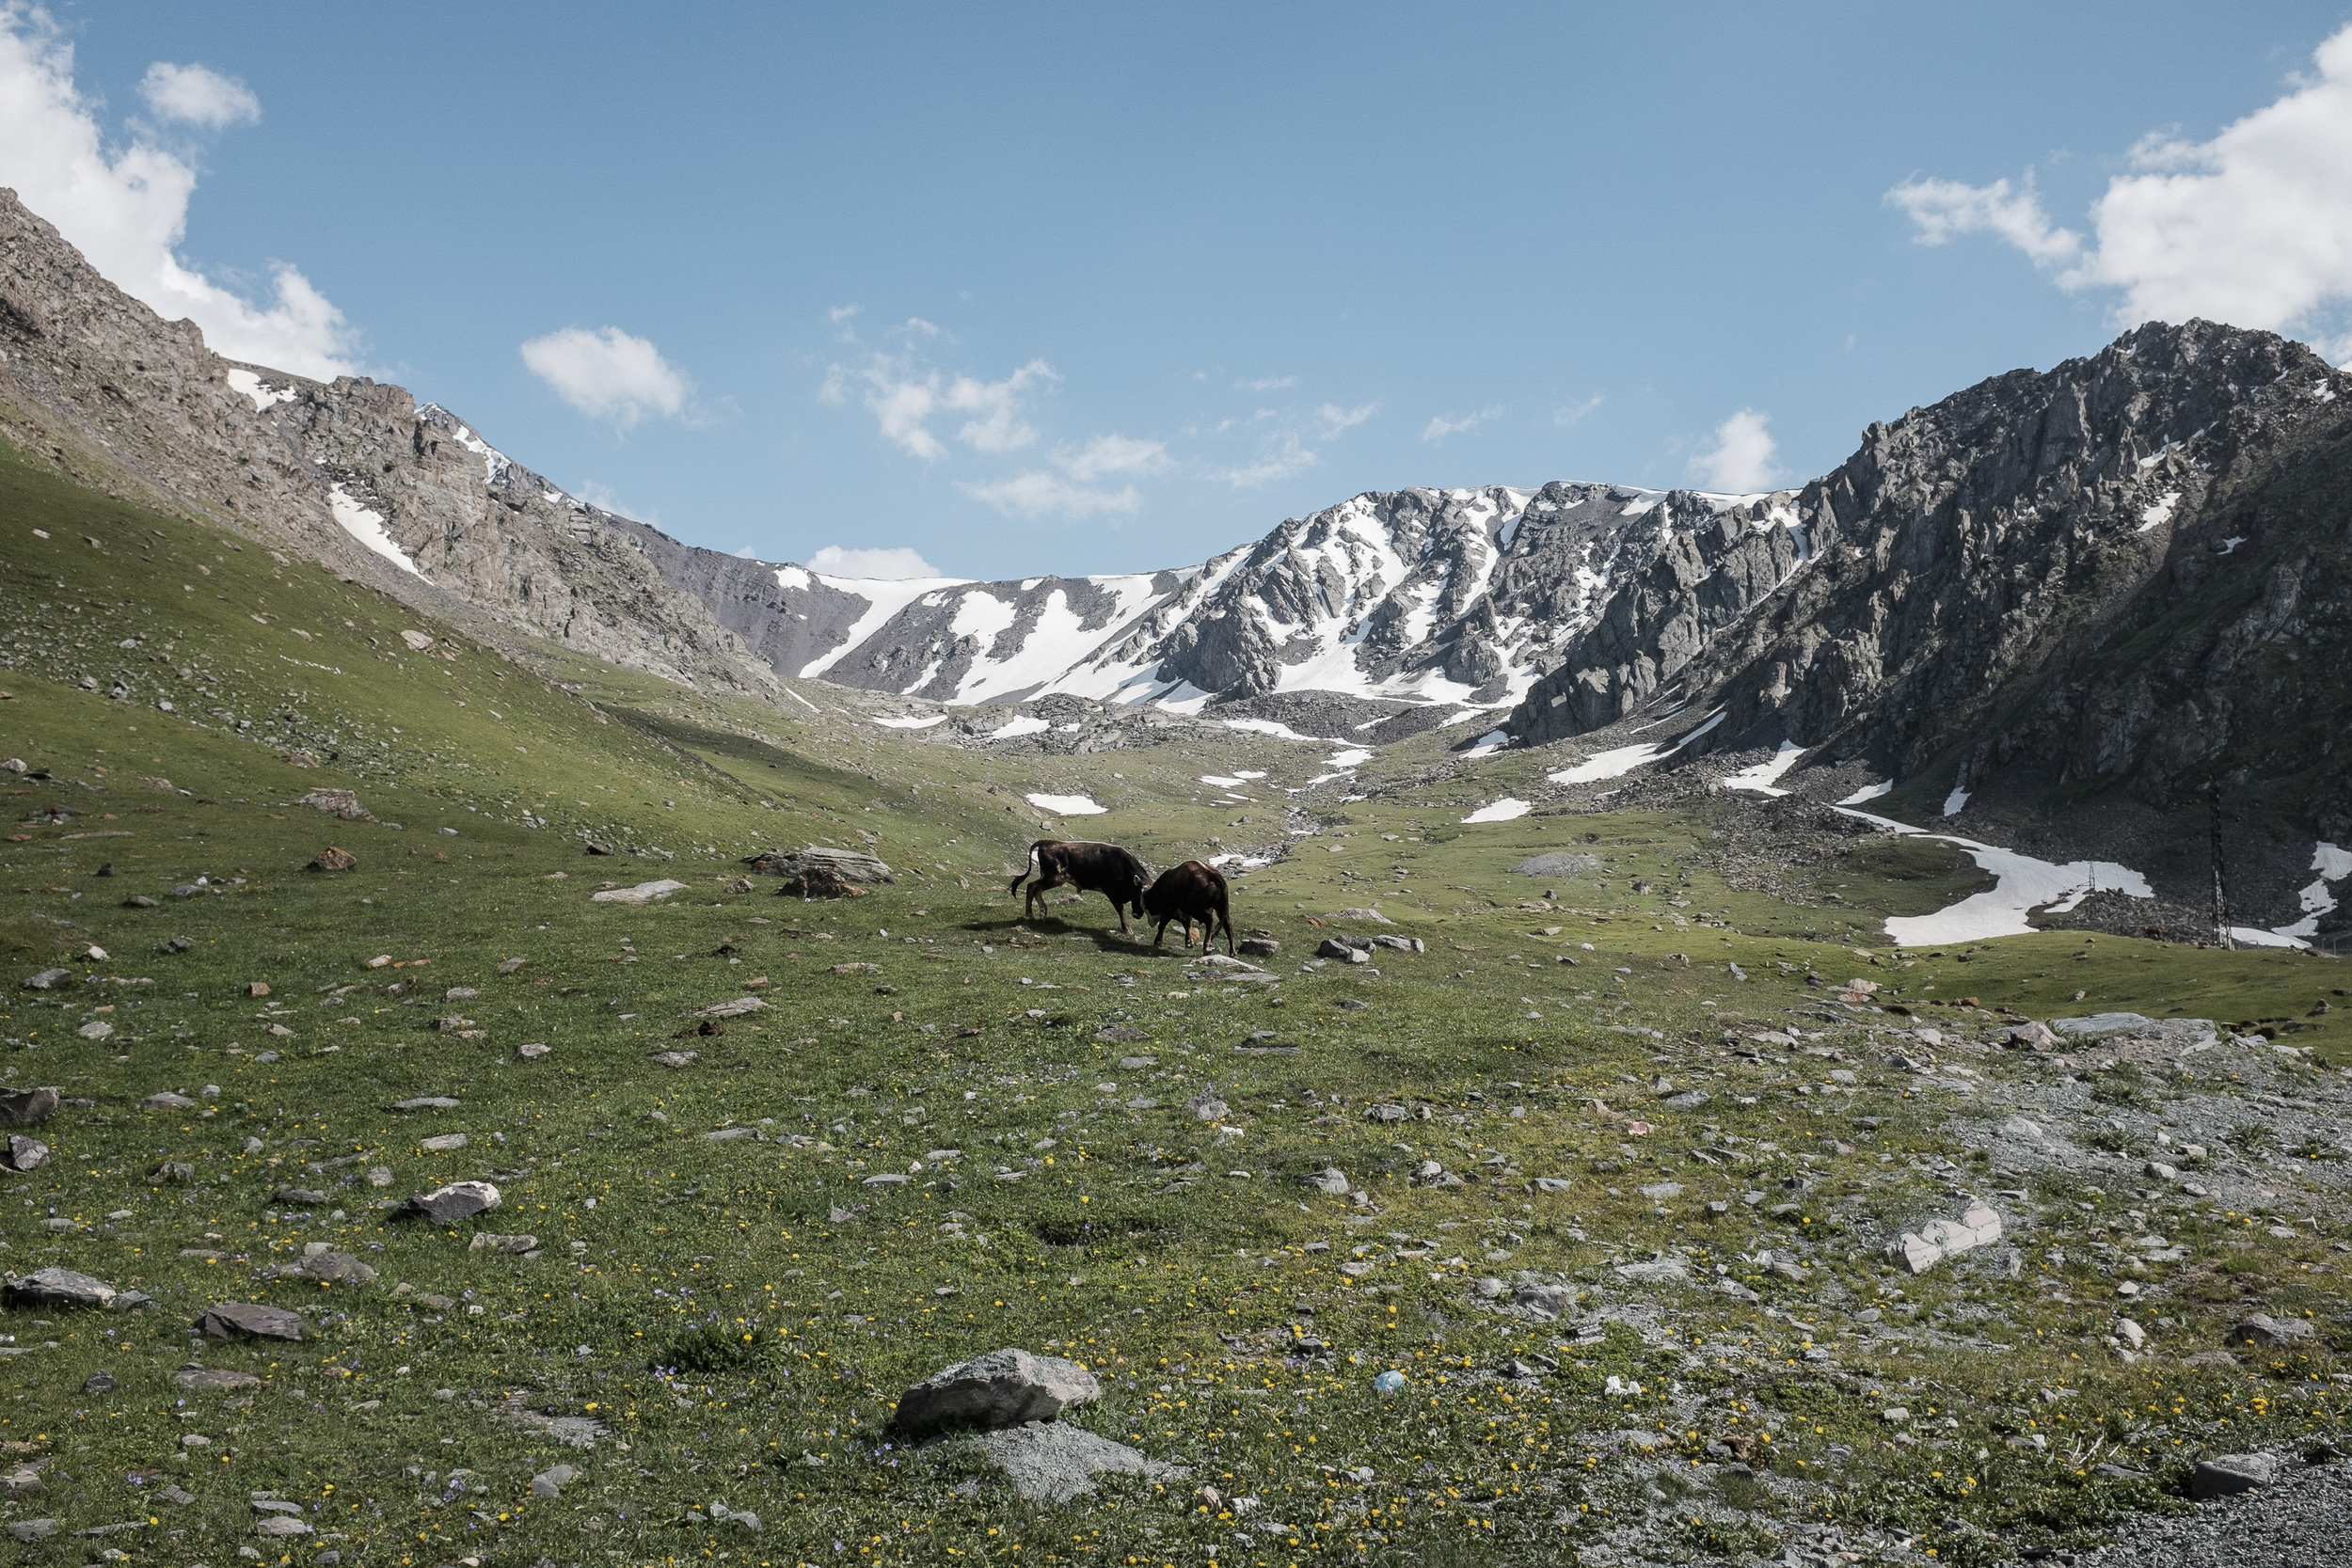 Bulls fighting near the Too-Ashuu pass (3180m) on the way to Talas region (Kyrgyzstan).